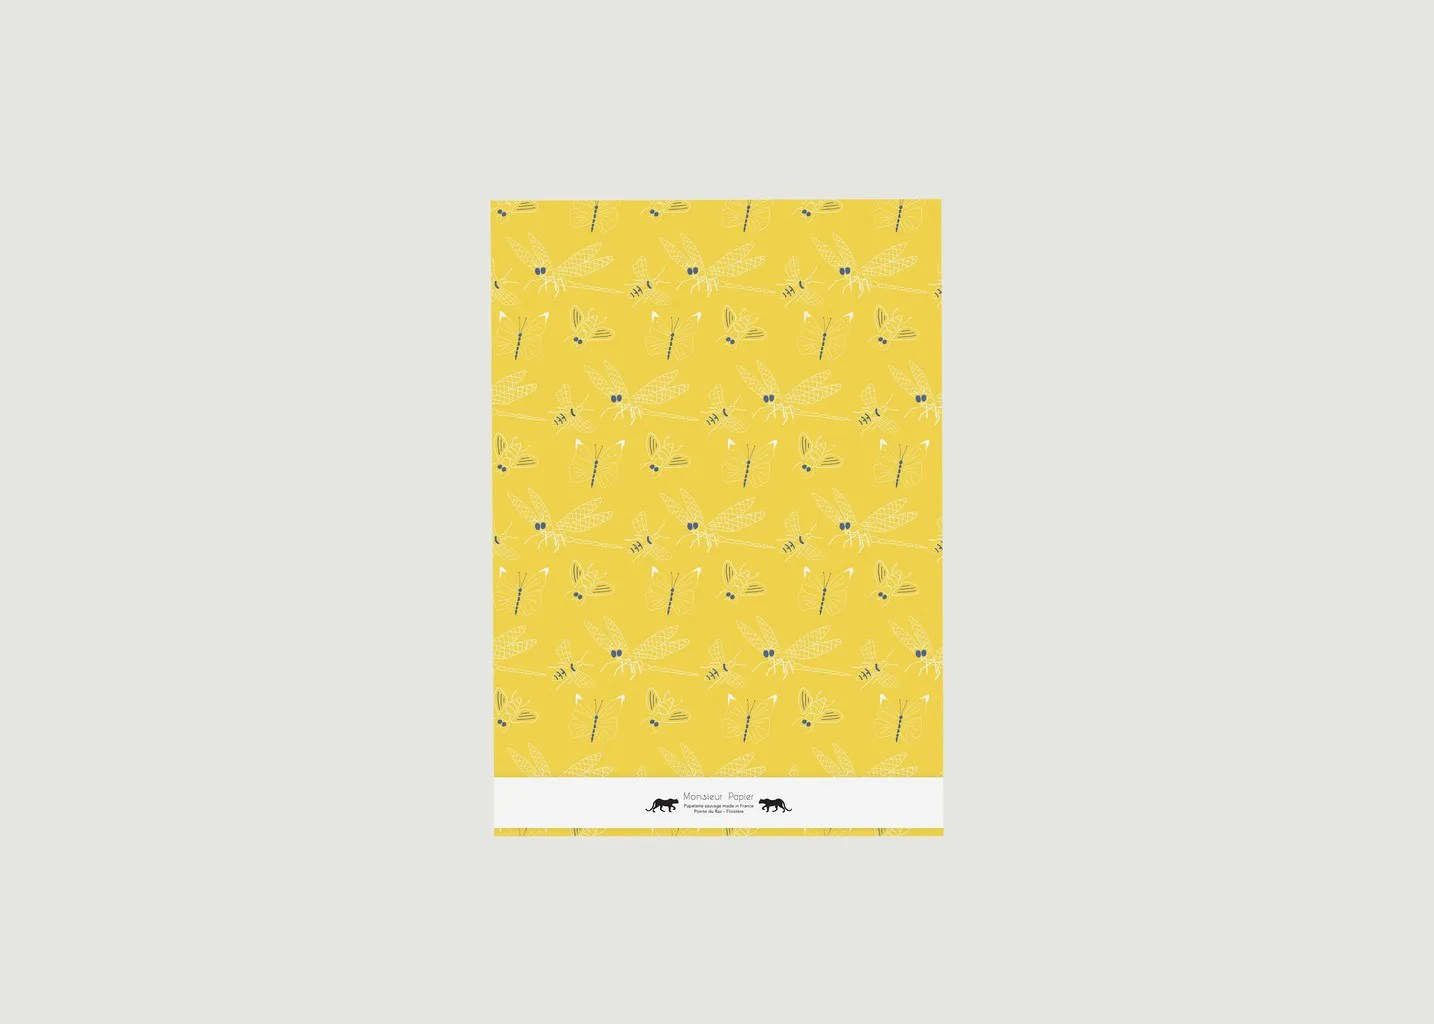 A3 Papier Large Carnet Libellules A3 Jaune Monsieur Papier Lexception